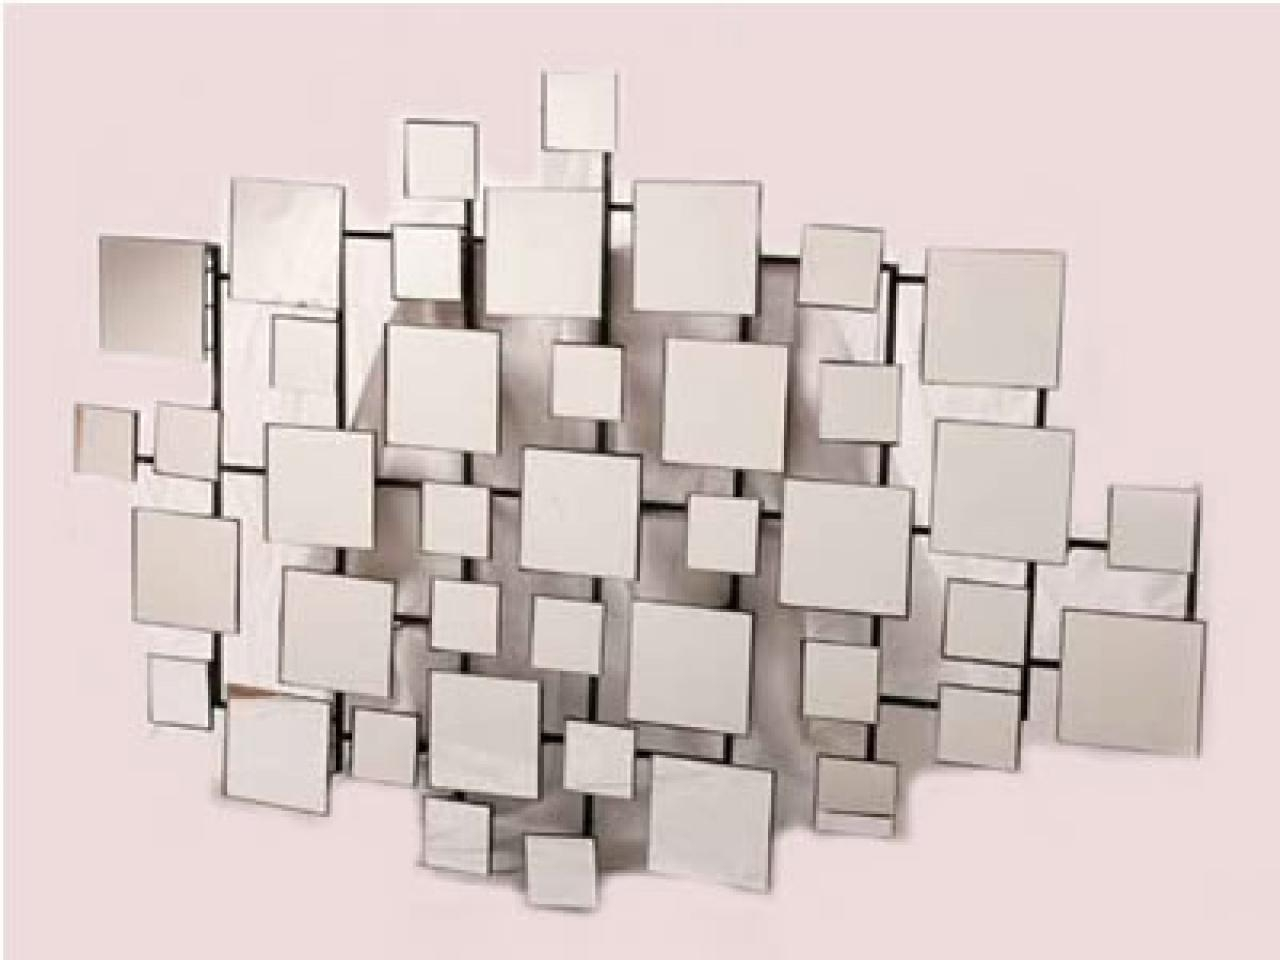 Wall Art Designs: Mirrored Wall Art Geometric Mirror Wall Art Pertaining To Modern Mirror Wall Art (Image 18 of 20)